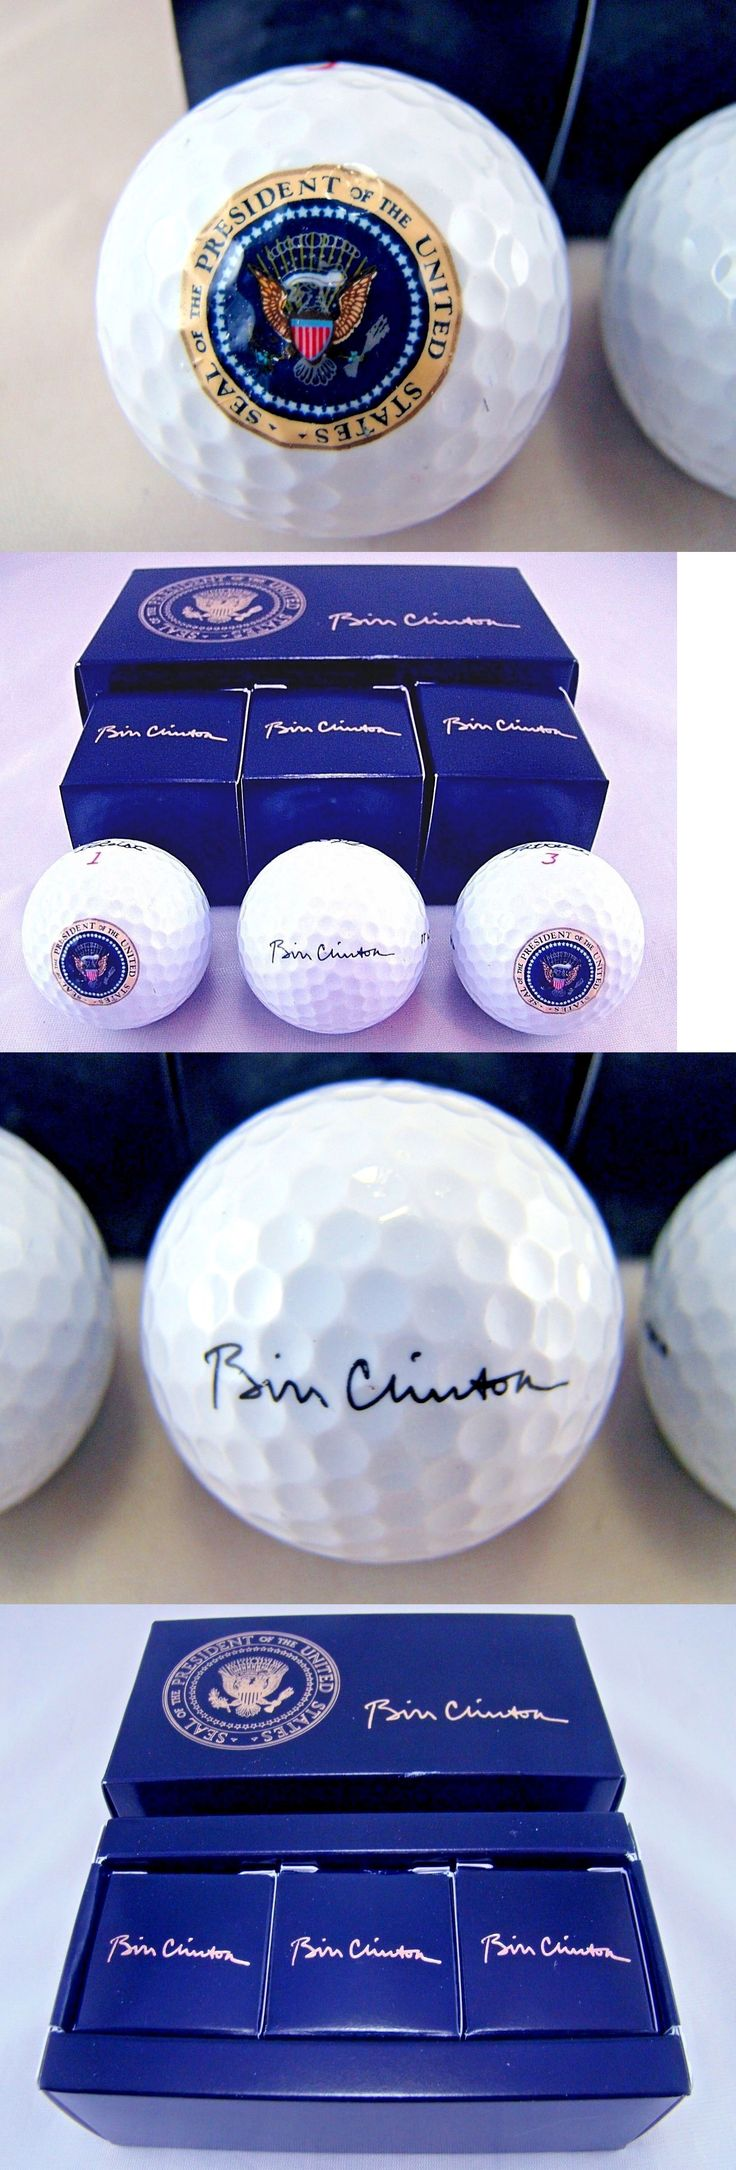 Bill Clinton: Genuine 3 Pack President Bill Clinton Presidential Seal White House Golf Balls -> BUY IT NOW ONLY: $375 on eBay!